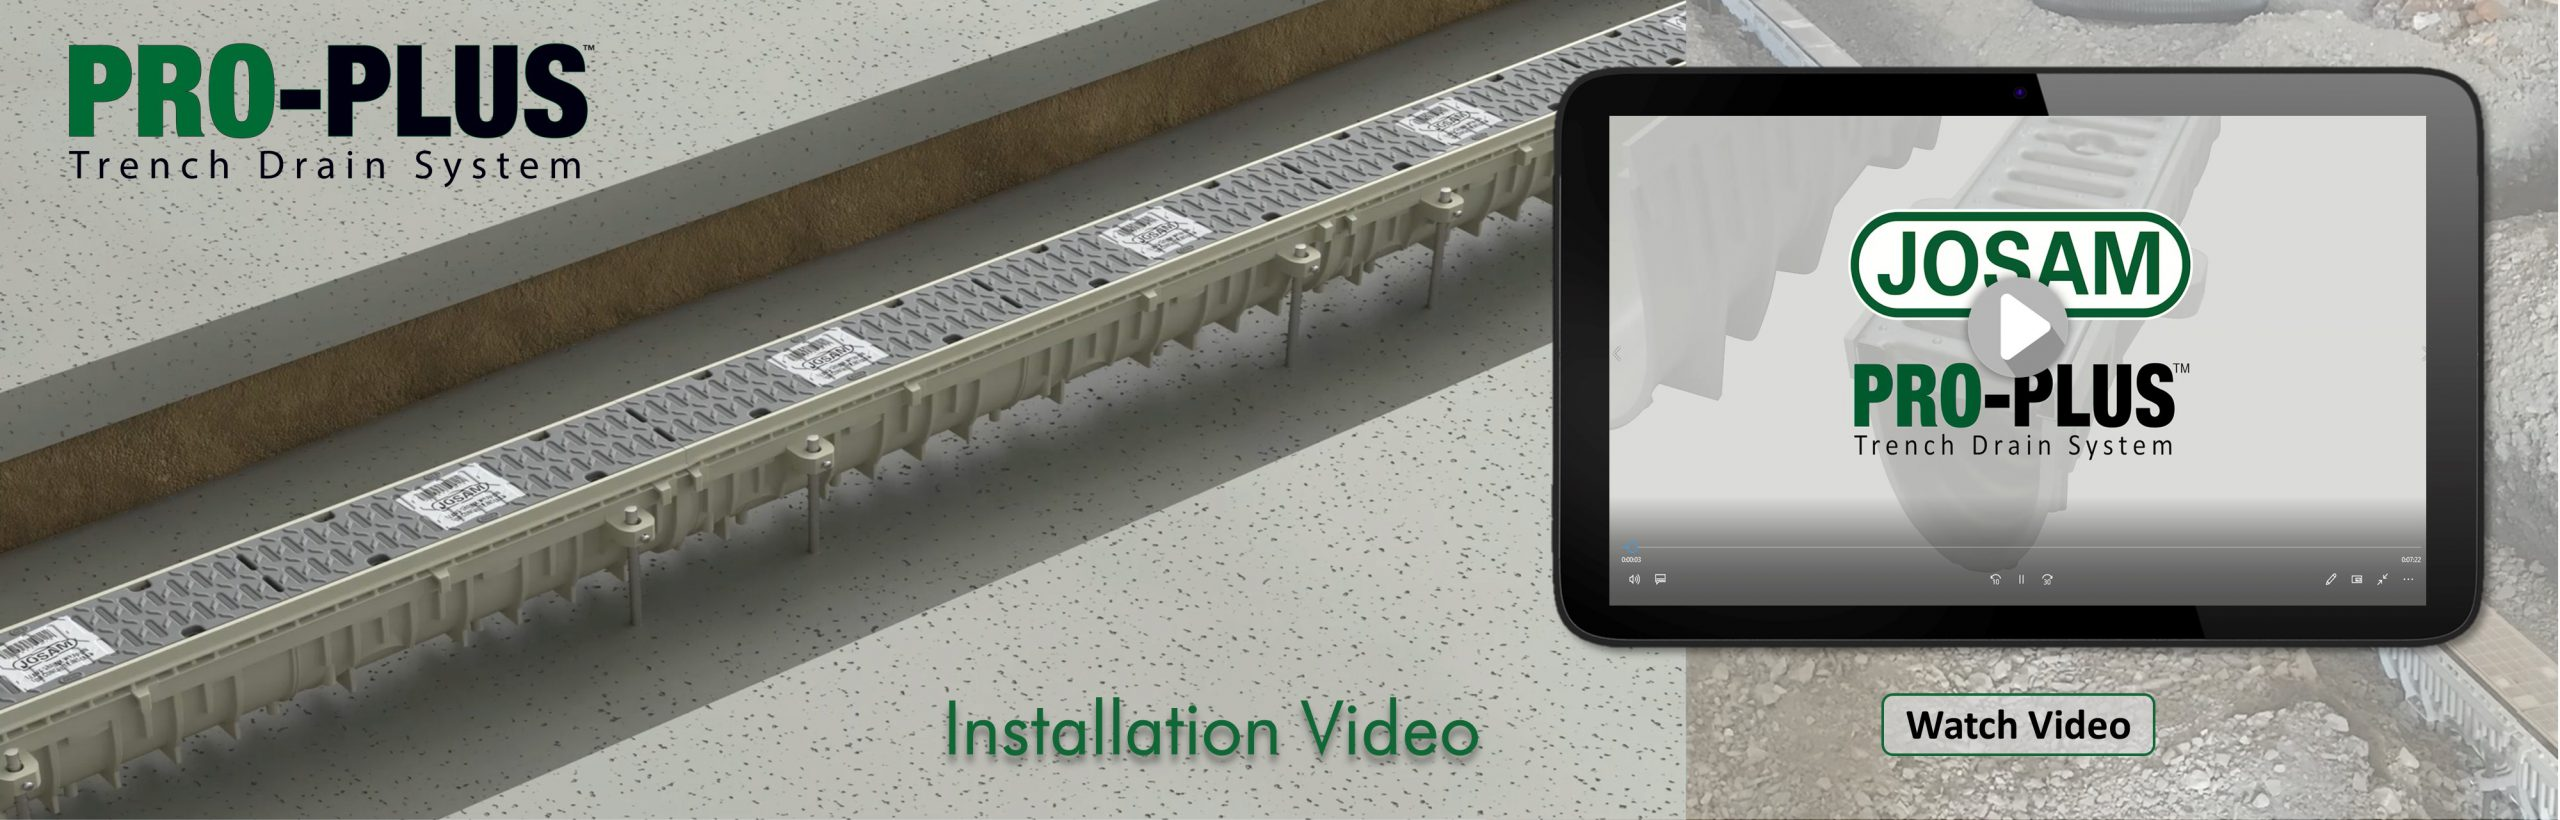 PRO-PLUS Trench Drain System Installation Video